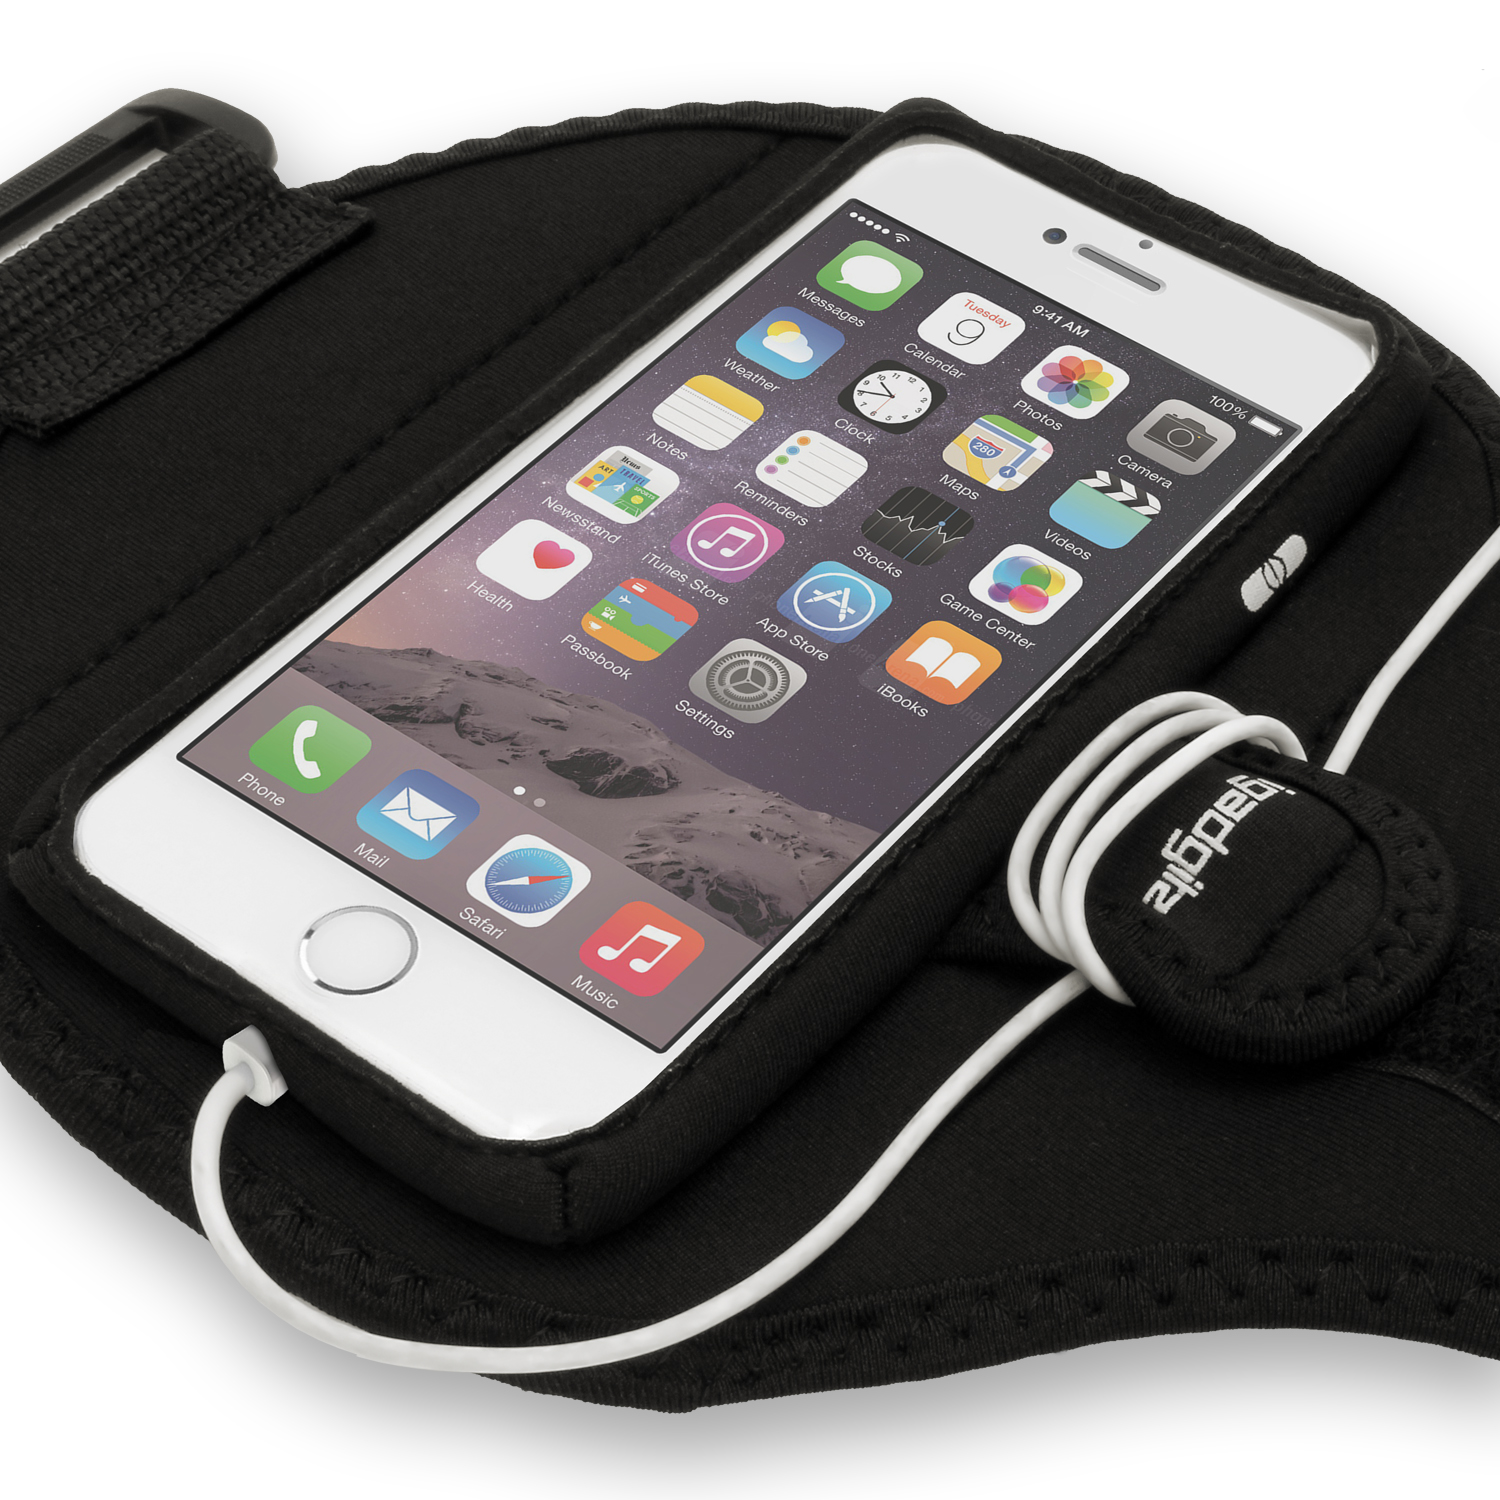 sports armband fitness tasche f r apple iphone 7 4 7 joggen etui schutzh lle ebay. Black Bedroom Furniture Sets. Home Design Ideas